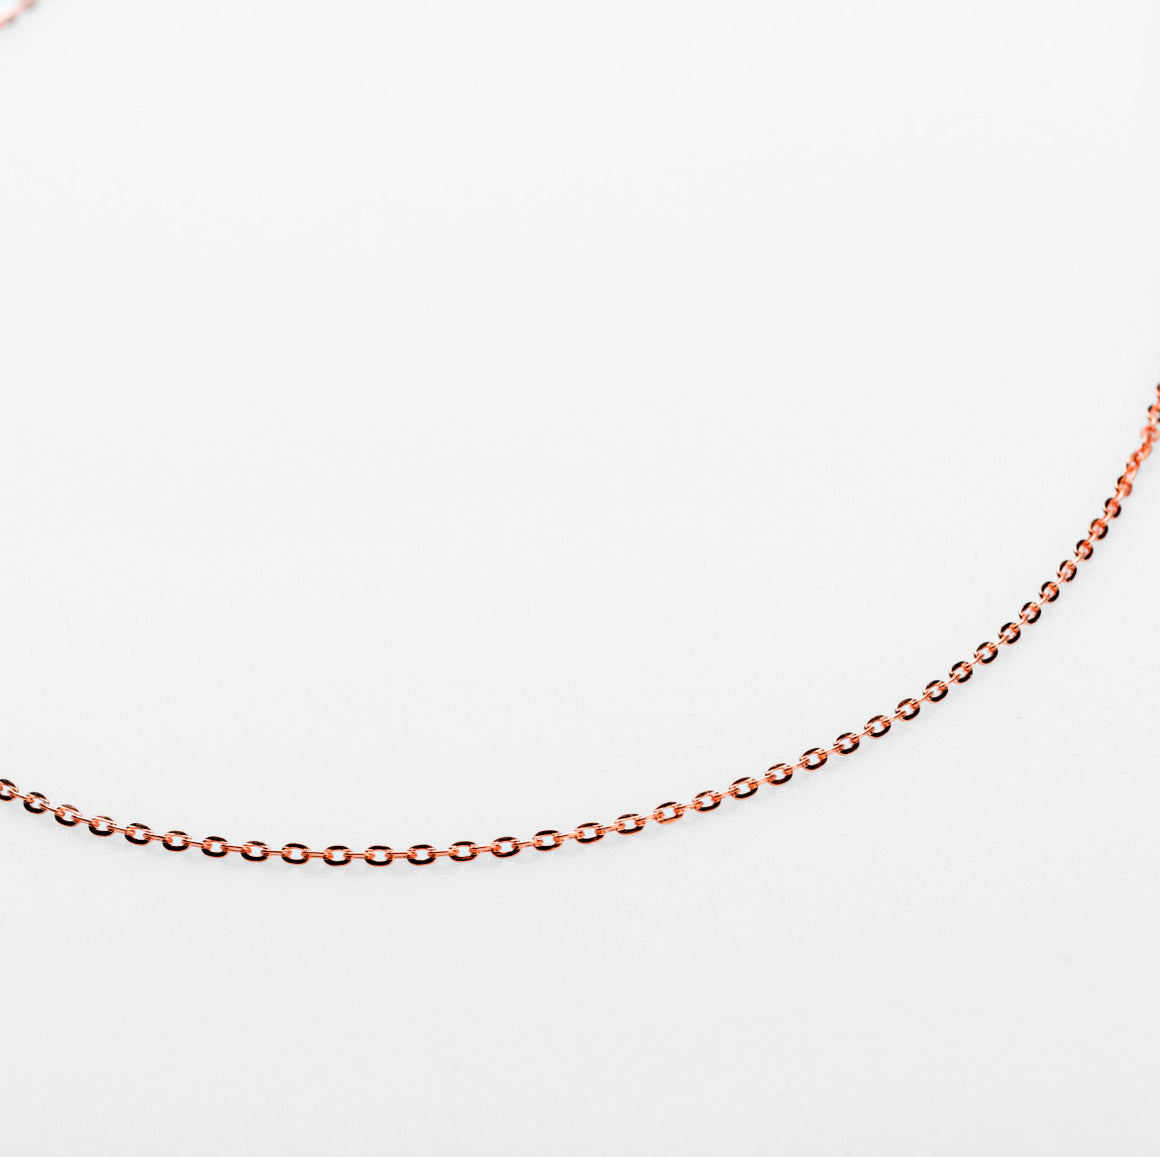 KEENA STAPLE NECKLACE CHAIN | ROSE GOLD